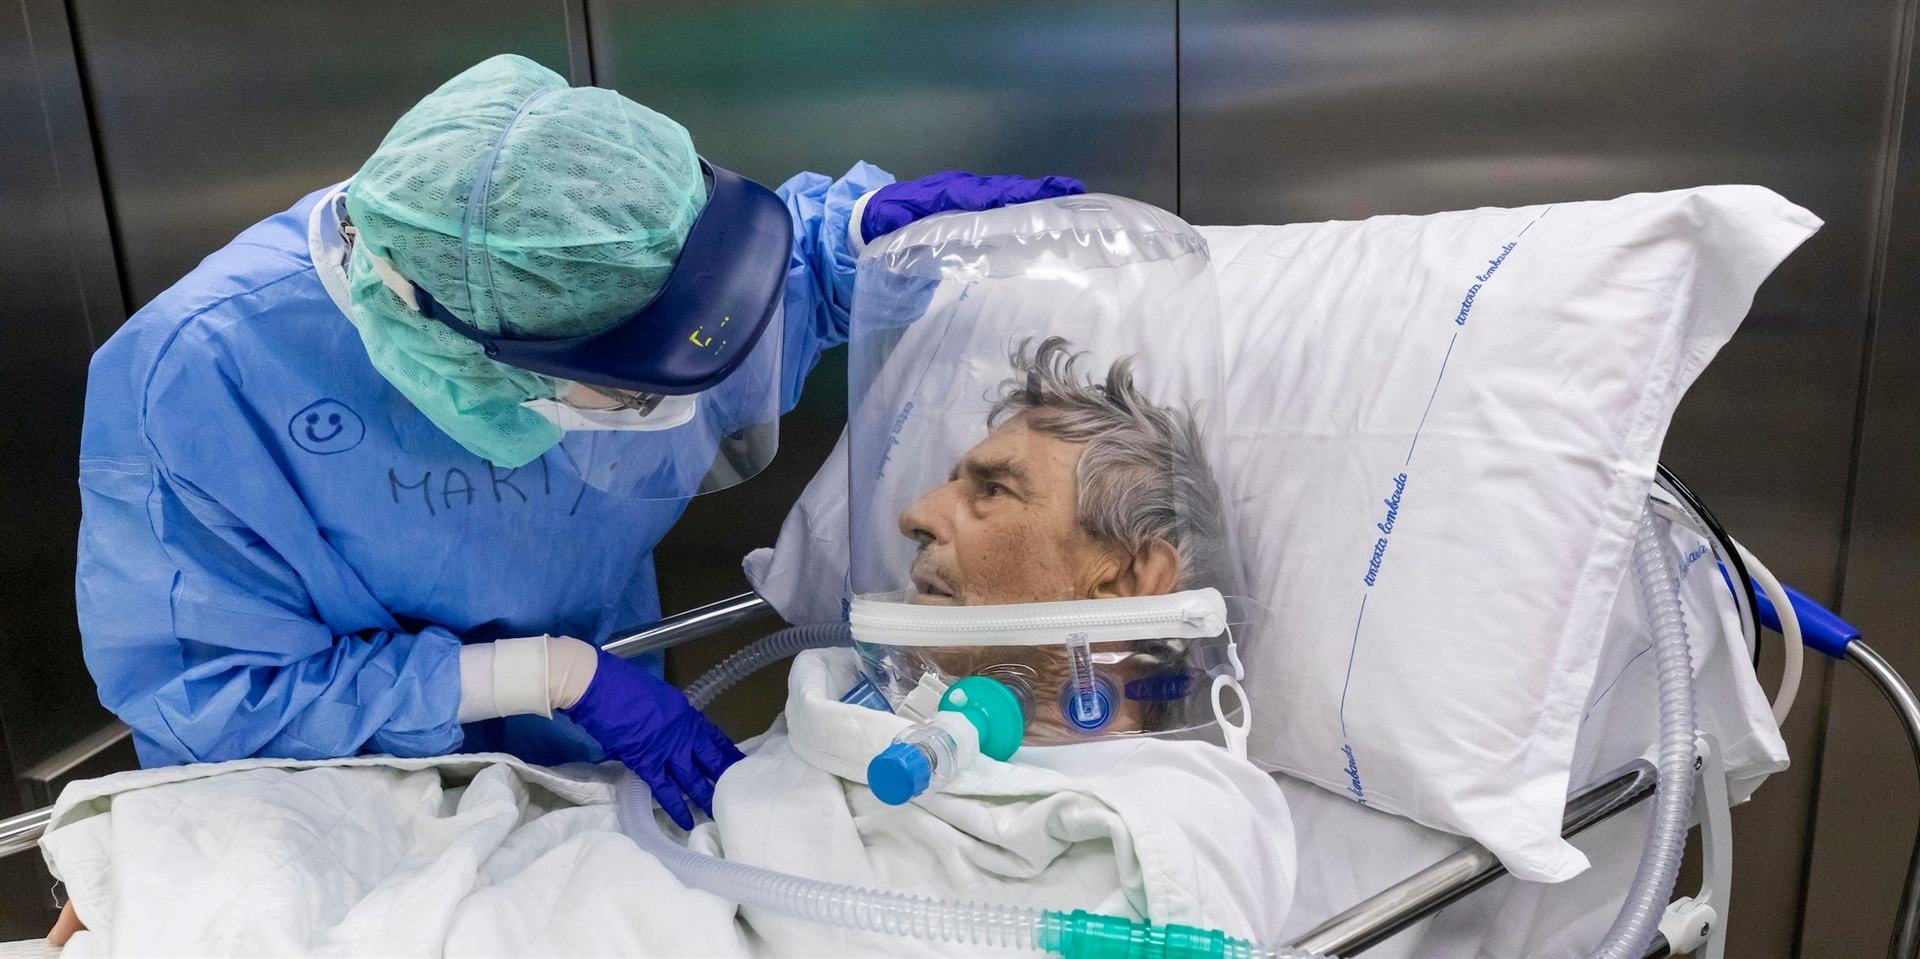 A nurse attends to a Covid-19 patient.